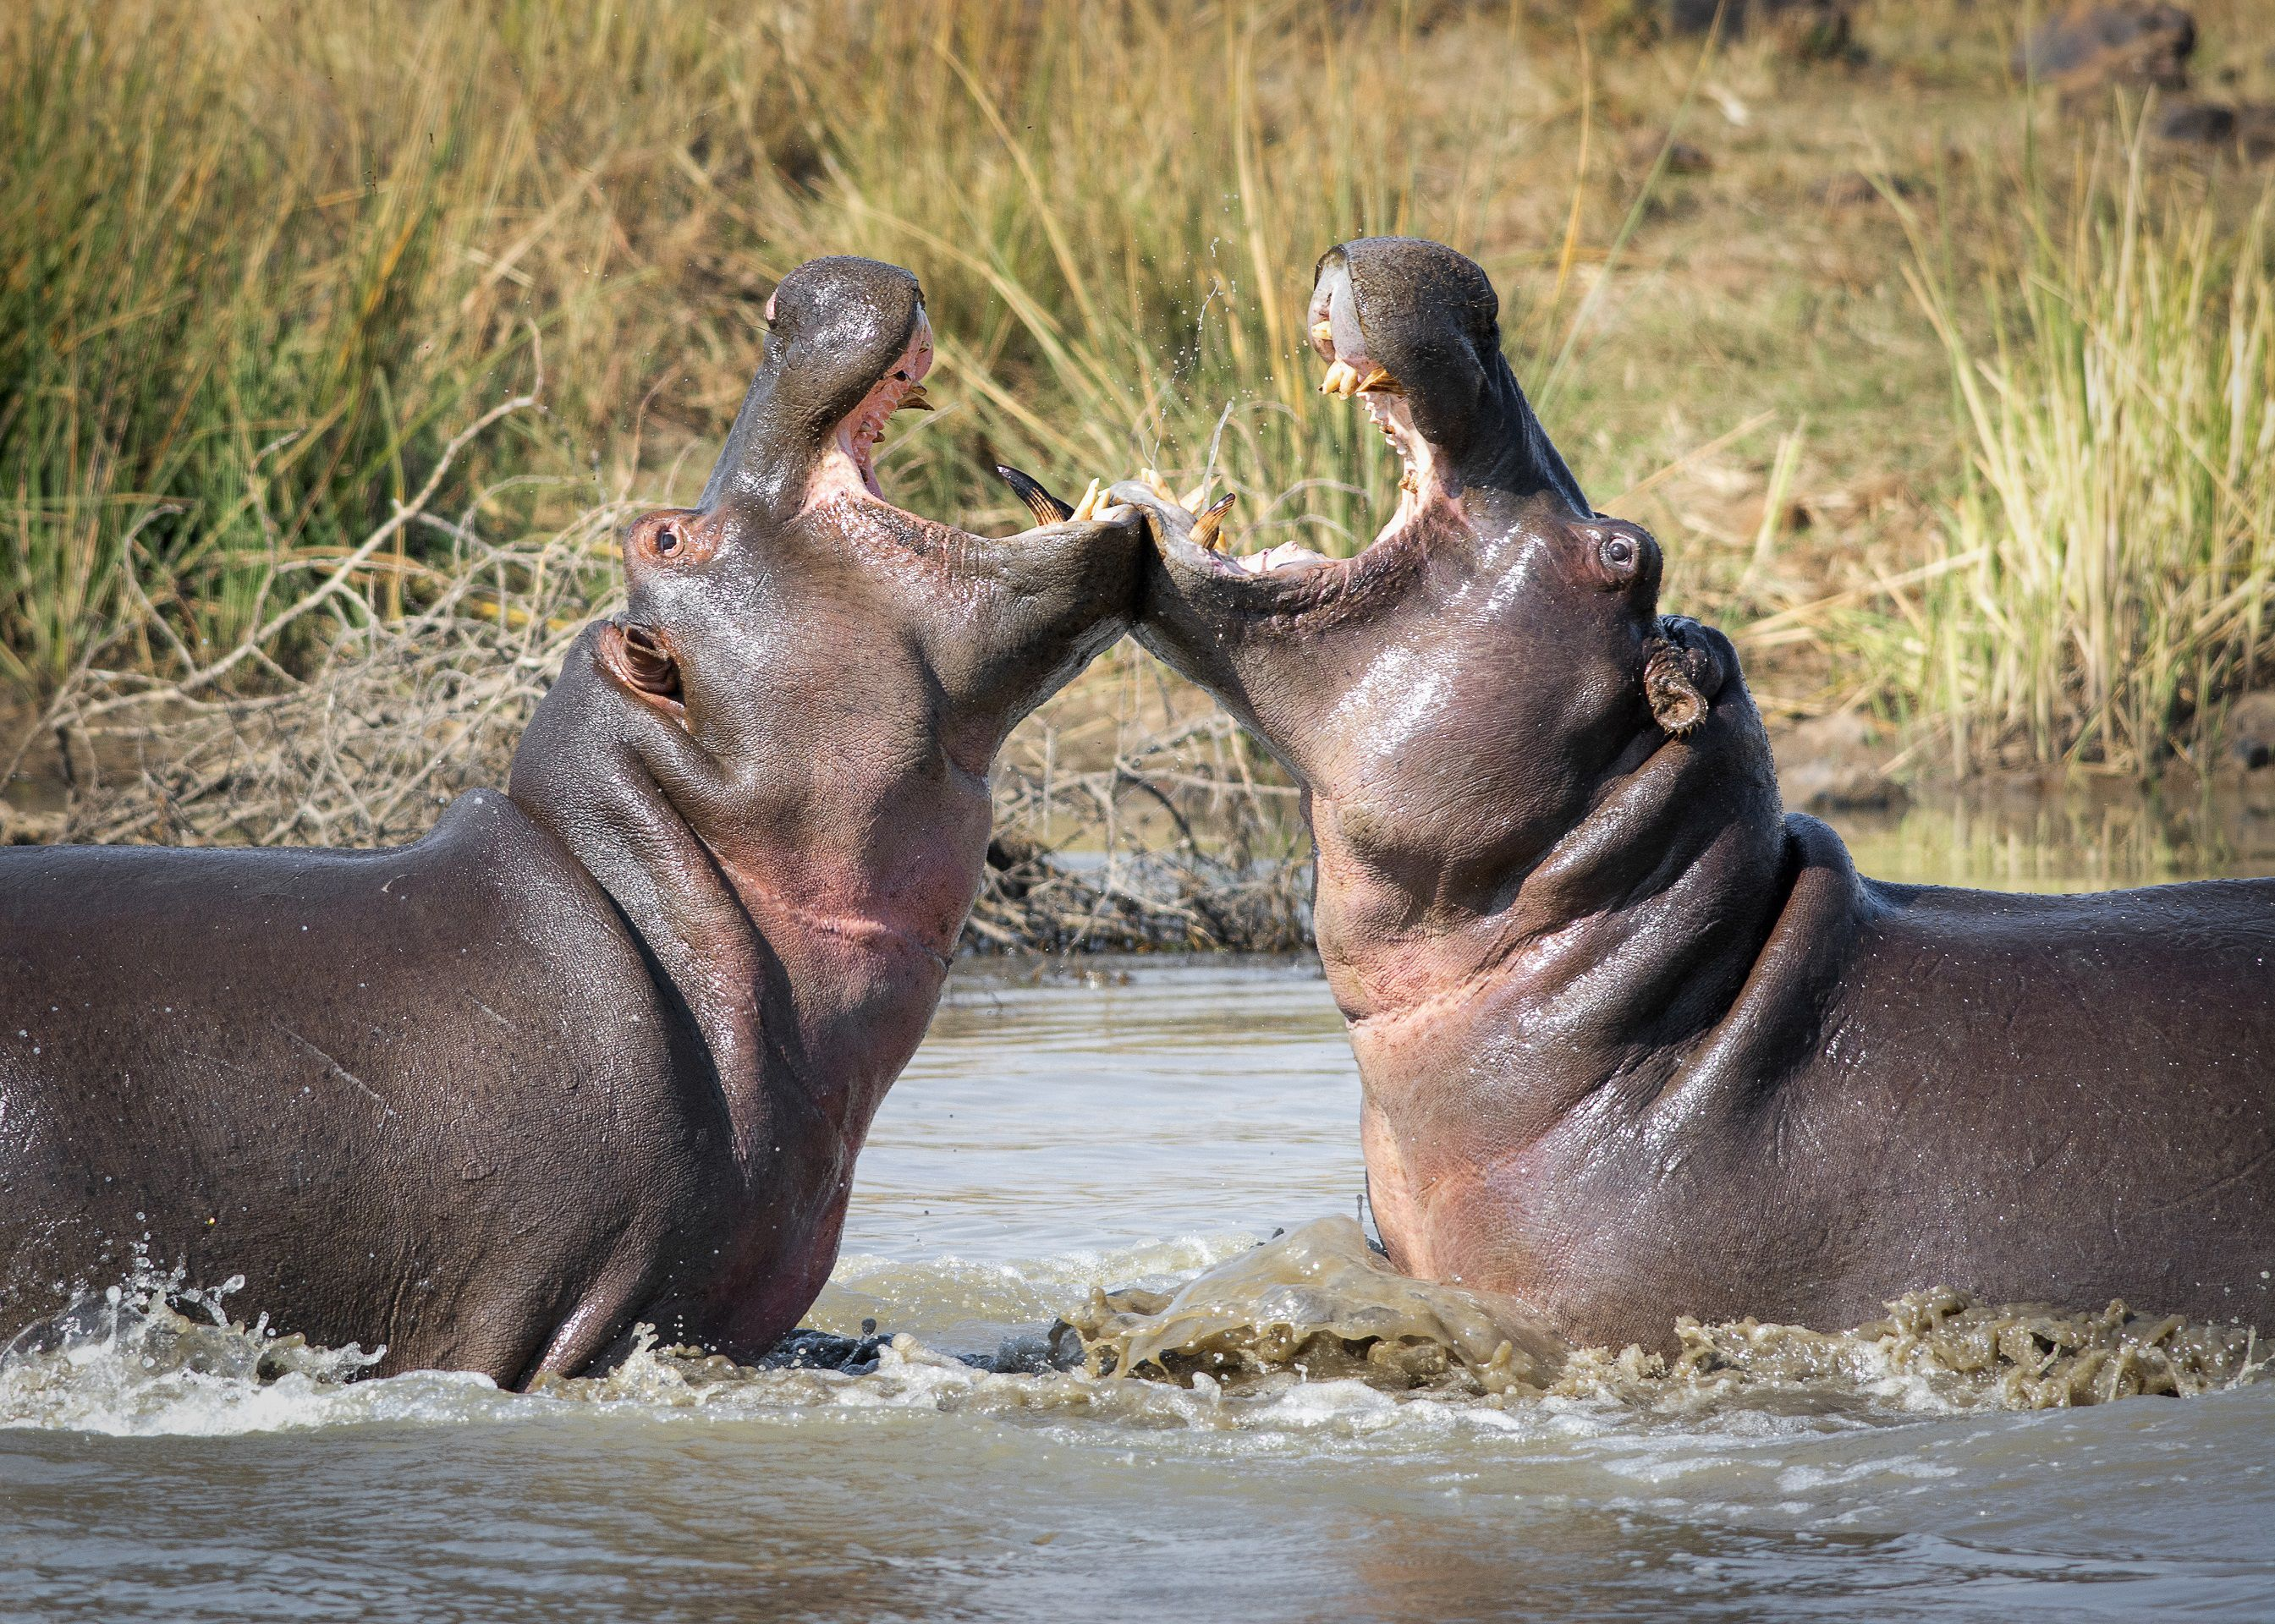 Hippopotamus fight in a body of water surrounded by tall grass.